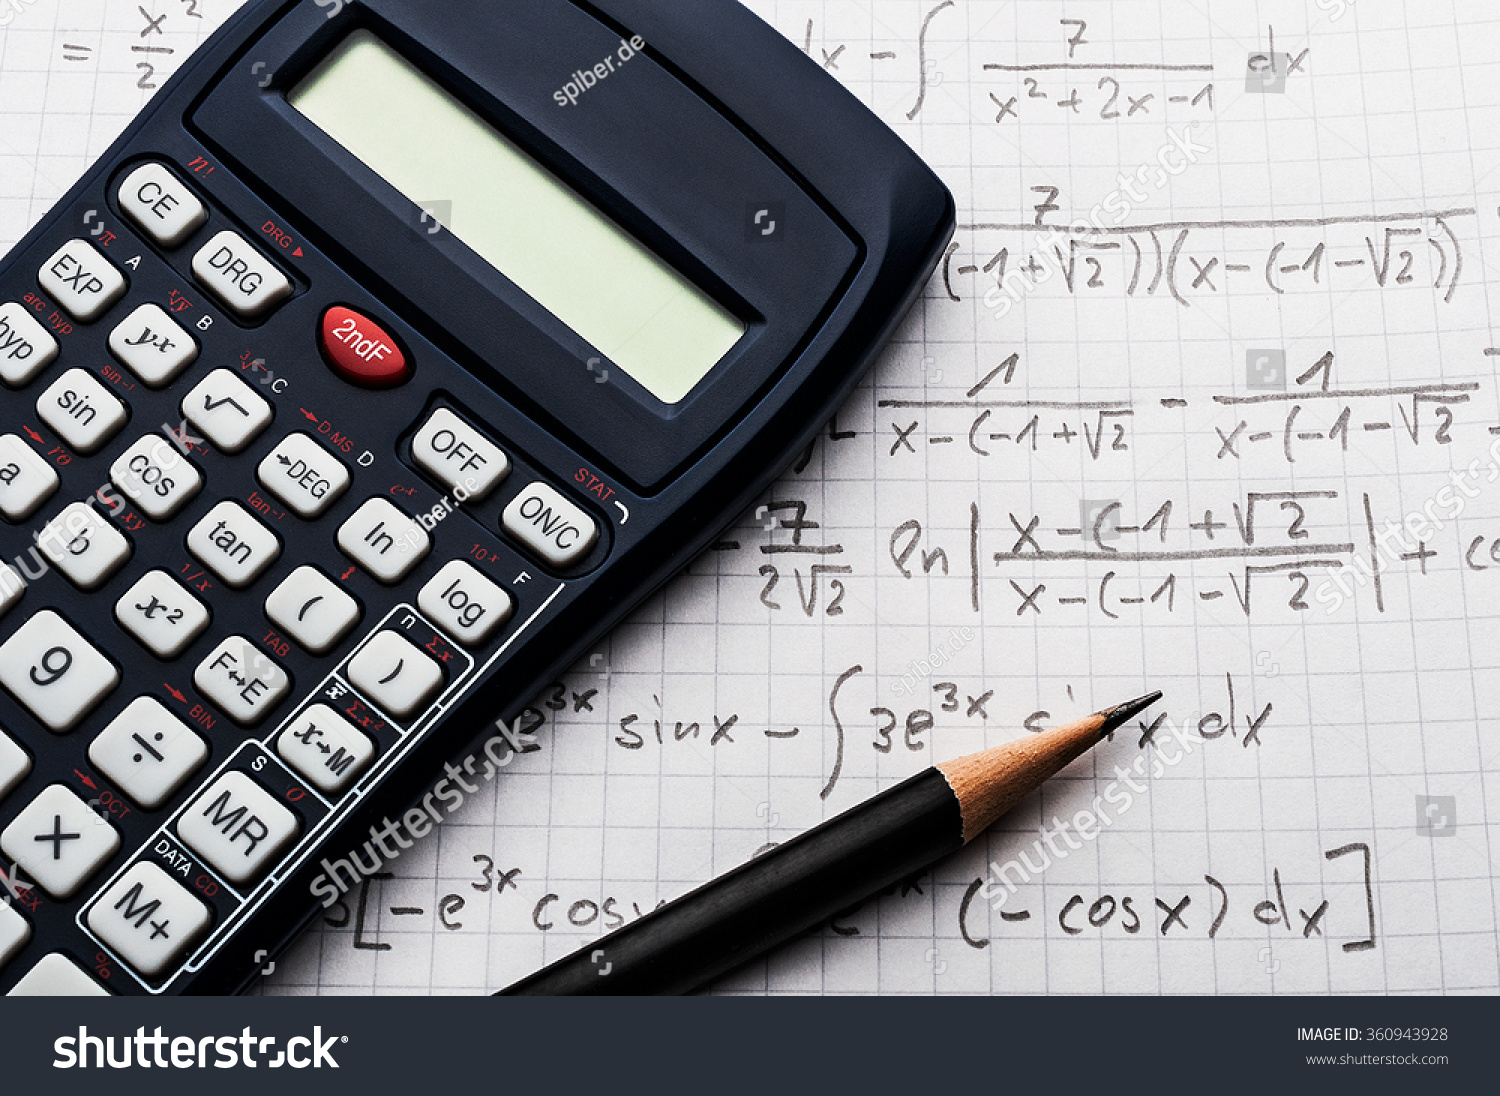 https://image.shutterstock.com/z/stock-photo-maths-concept-handheld-calculator-and-pencil-over-a-sheet-of-paper-with-maths-formulas-360943928.jpg